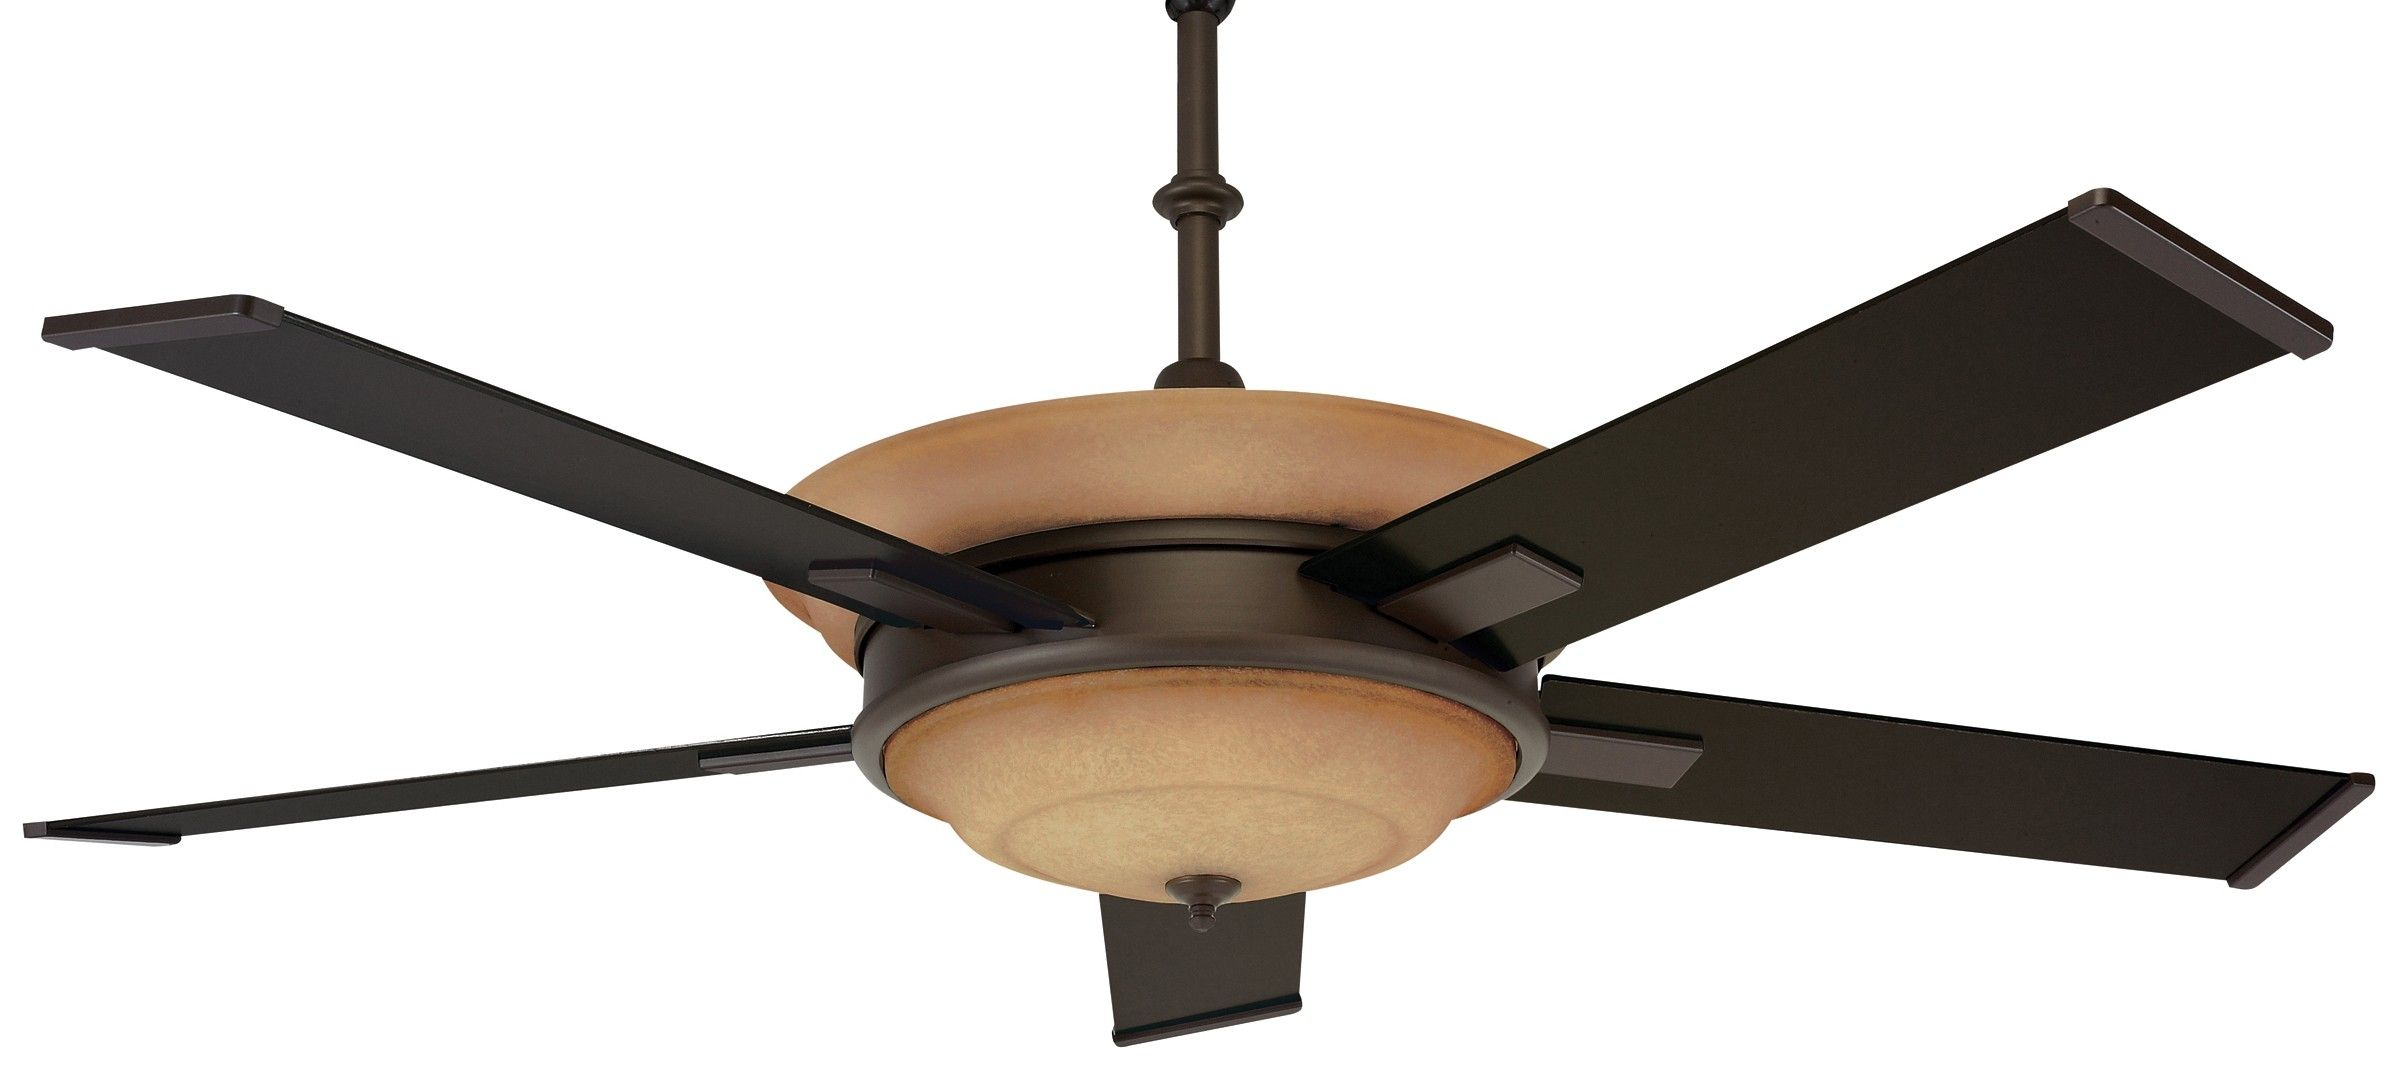 Ceiling Fan With Uplight And Downlight Ceiling Fan Ceiling Fan Bedroom Downlights